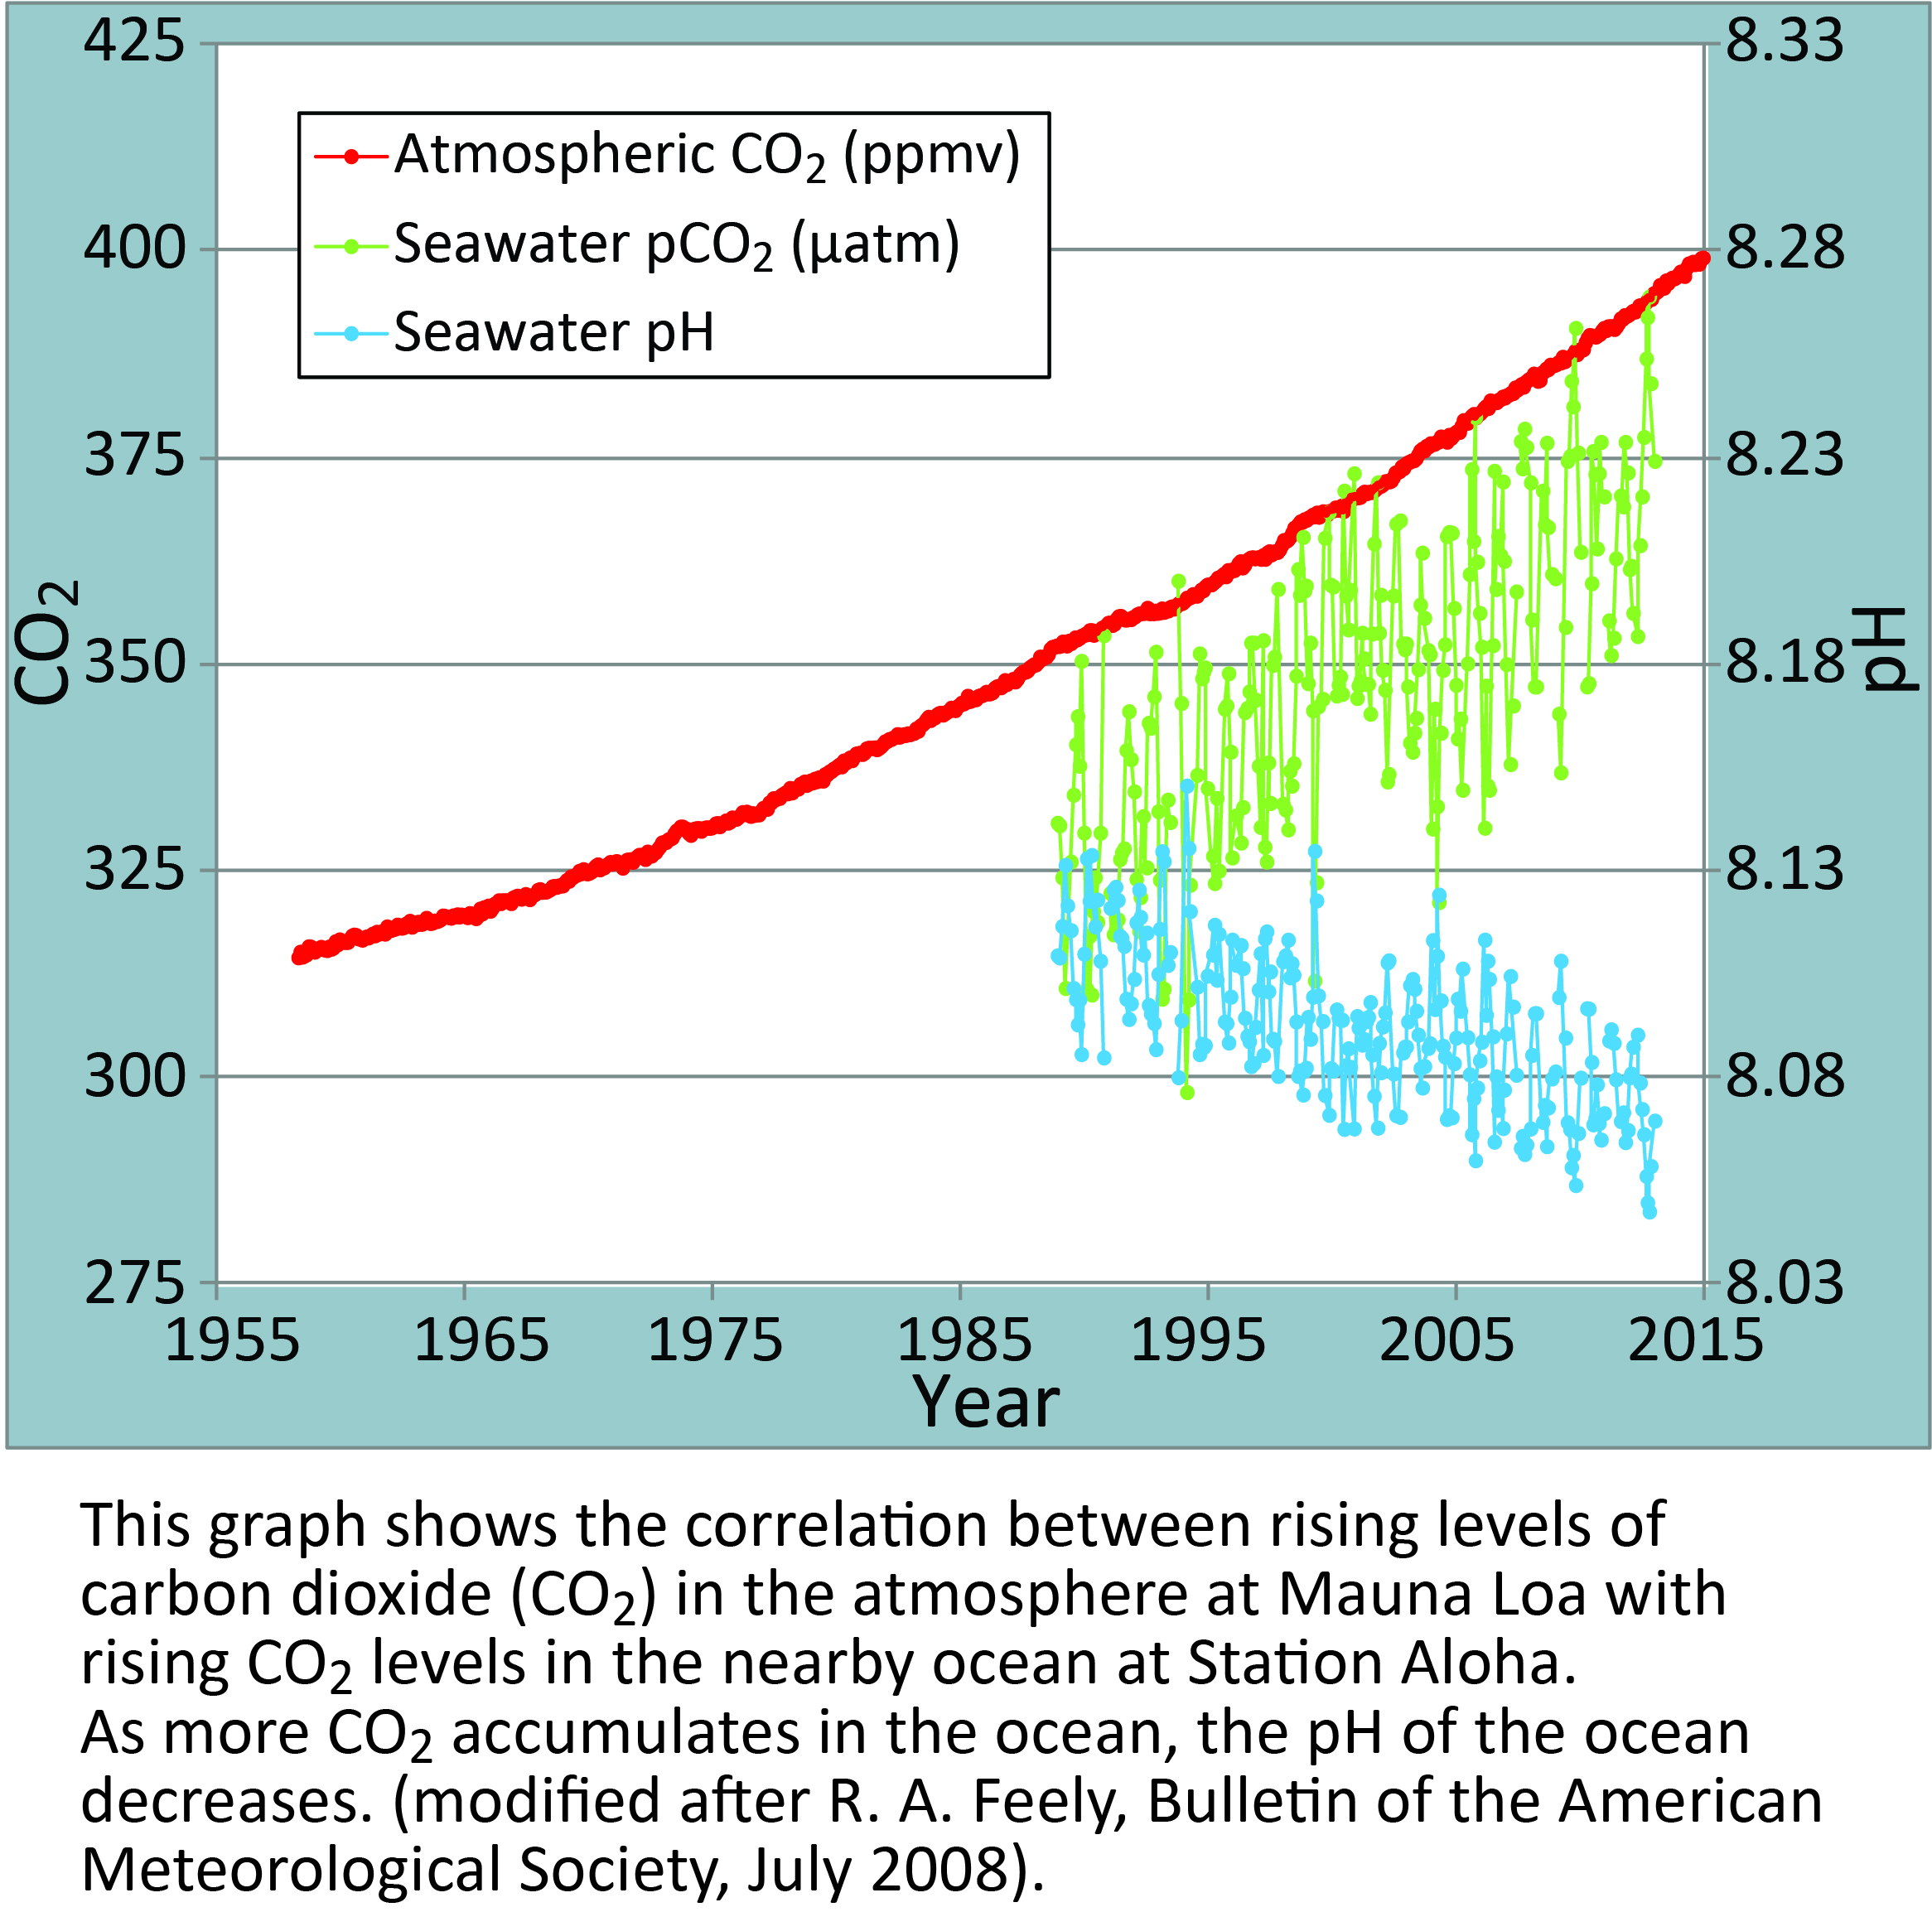 Image from: http://www.pmel.noaa.gov/co2/file/Hawaii+Carbon+Dioxide+Time-Series